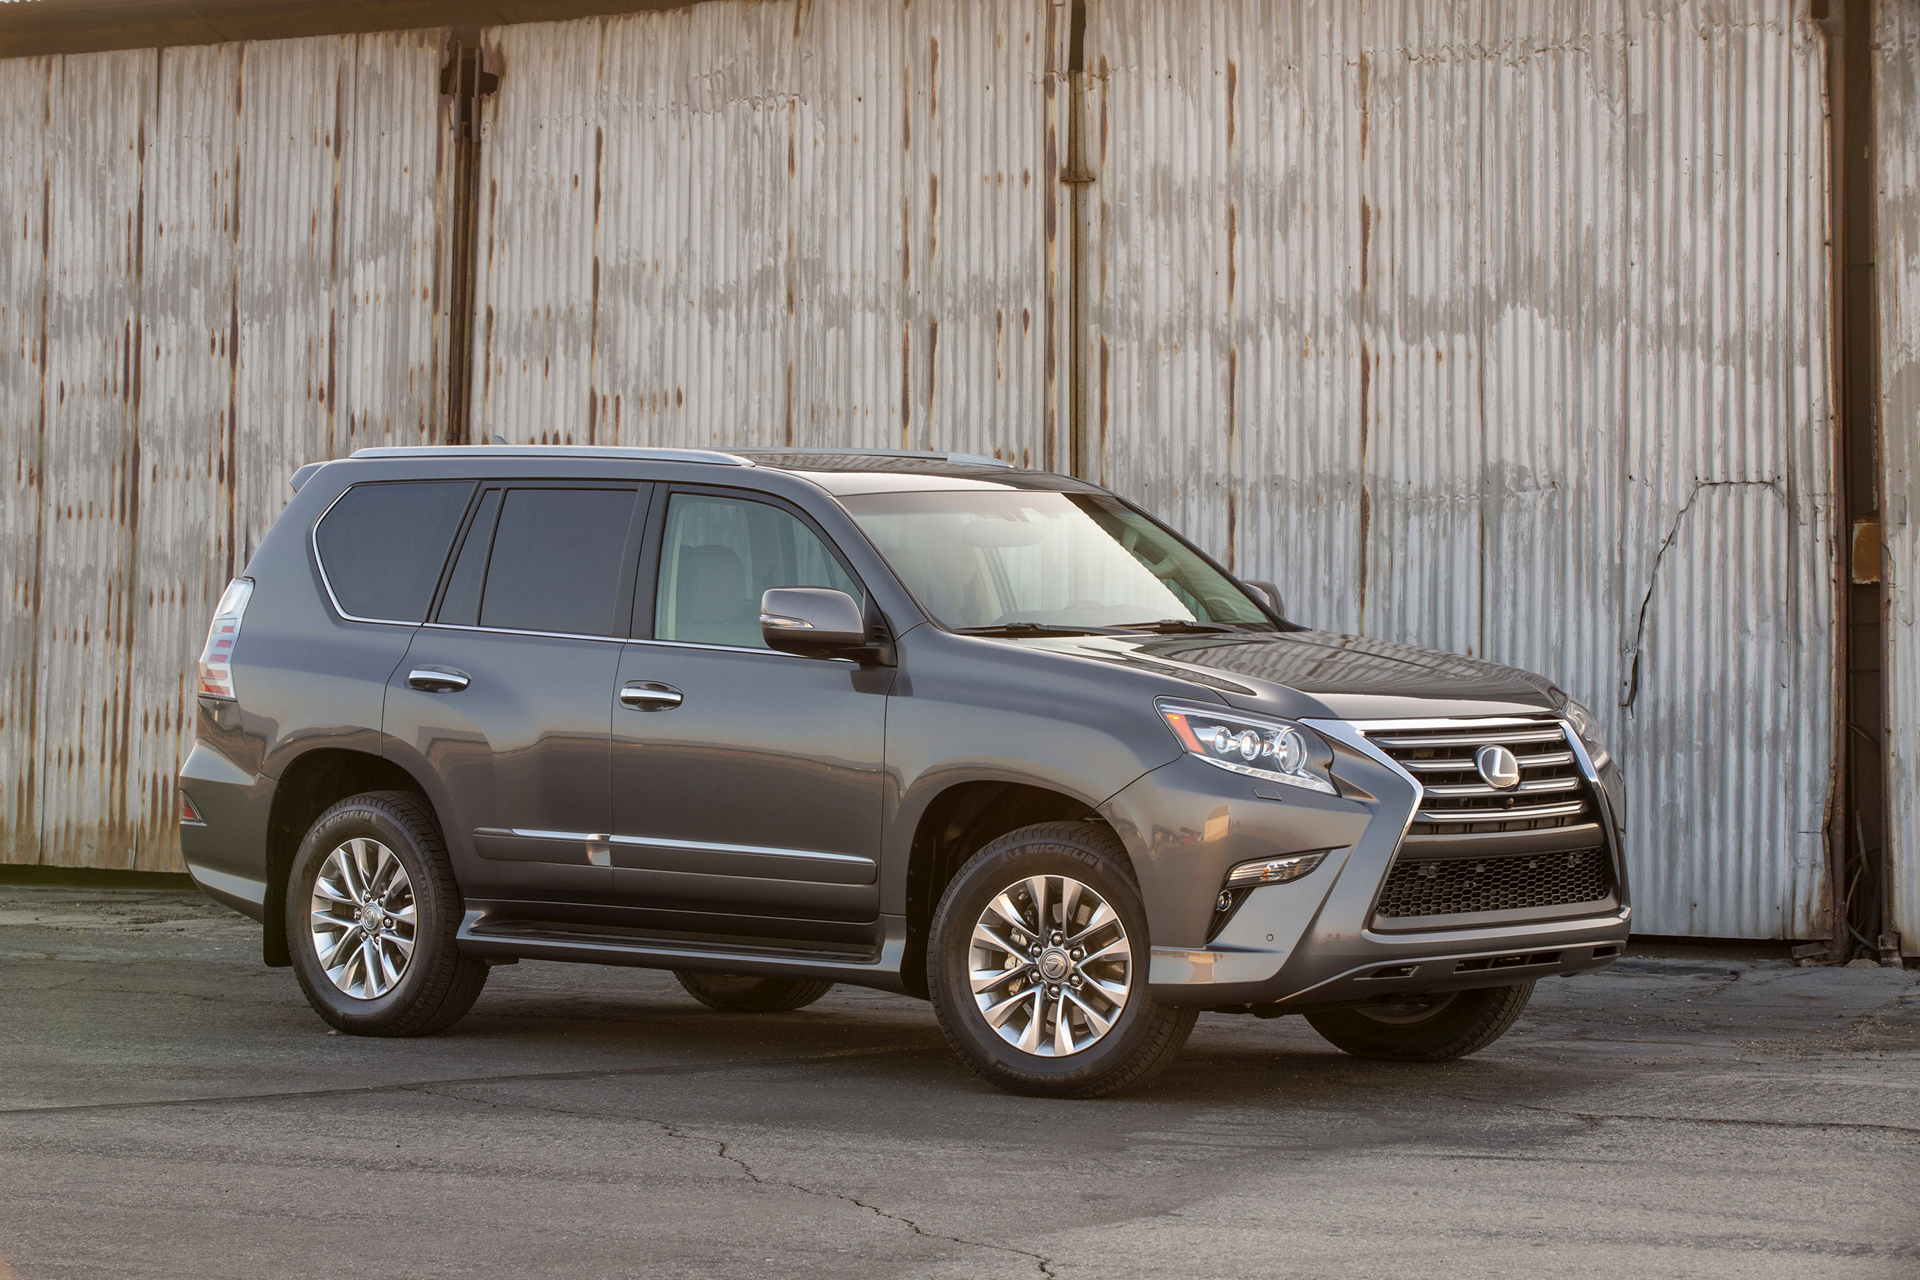 2016 lexus gx review carrrs auto portal. Black Bedroom Furniture Sets. Home Design Ideas